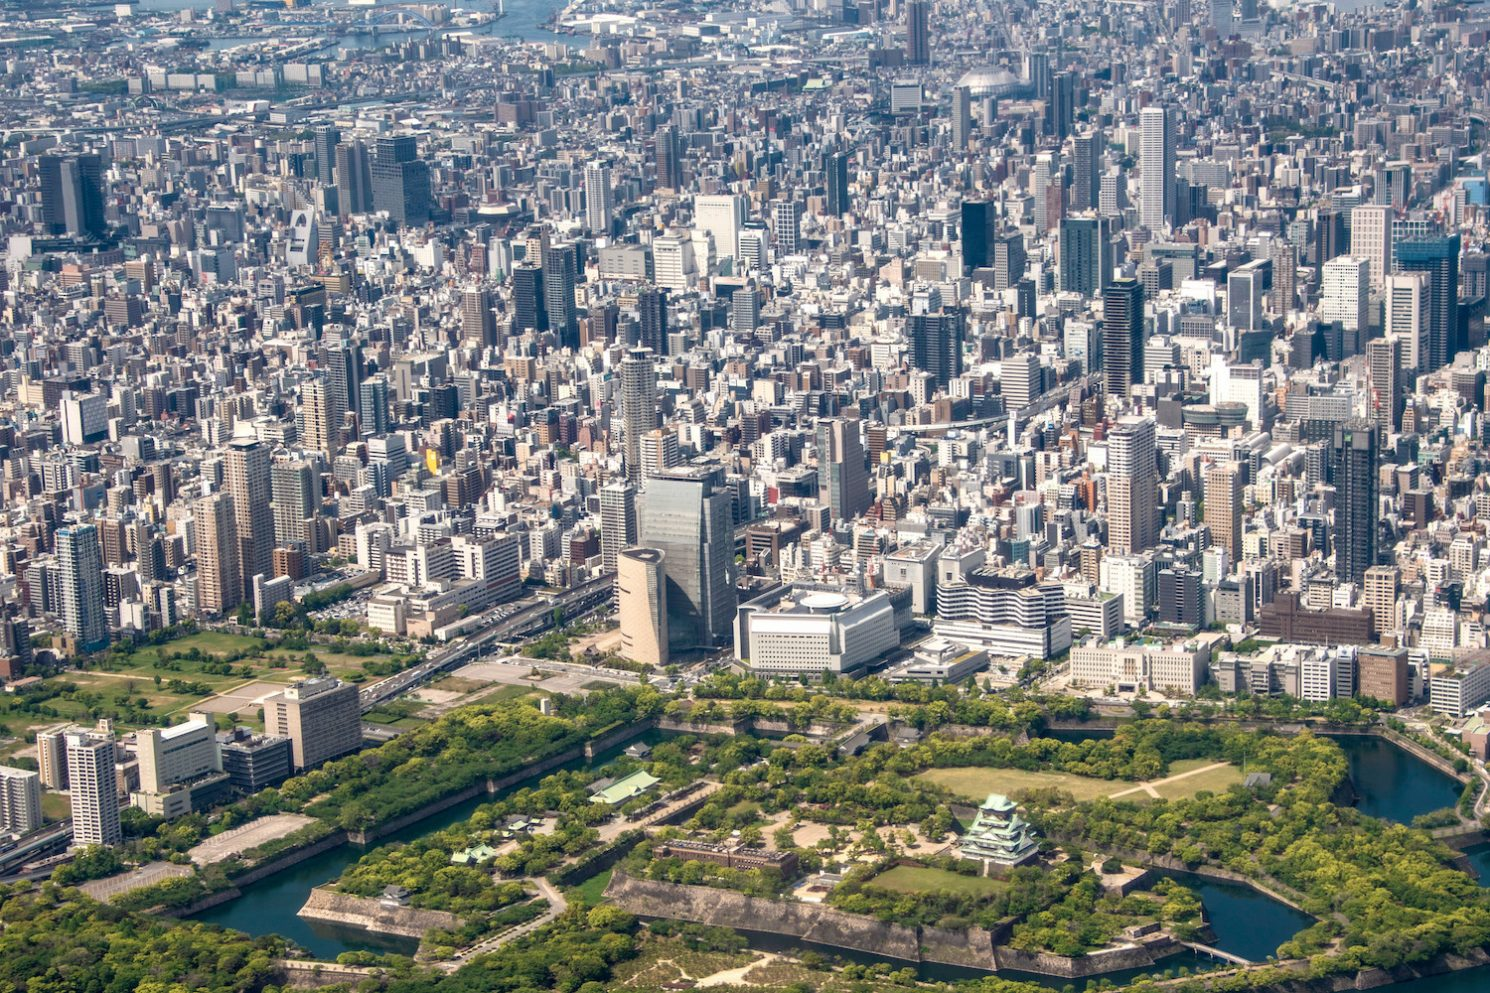 What Does the Future Hold for Osaka?